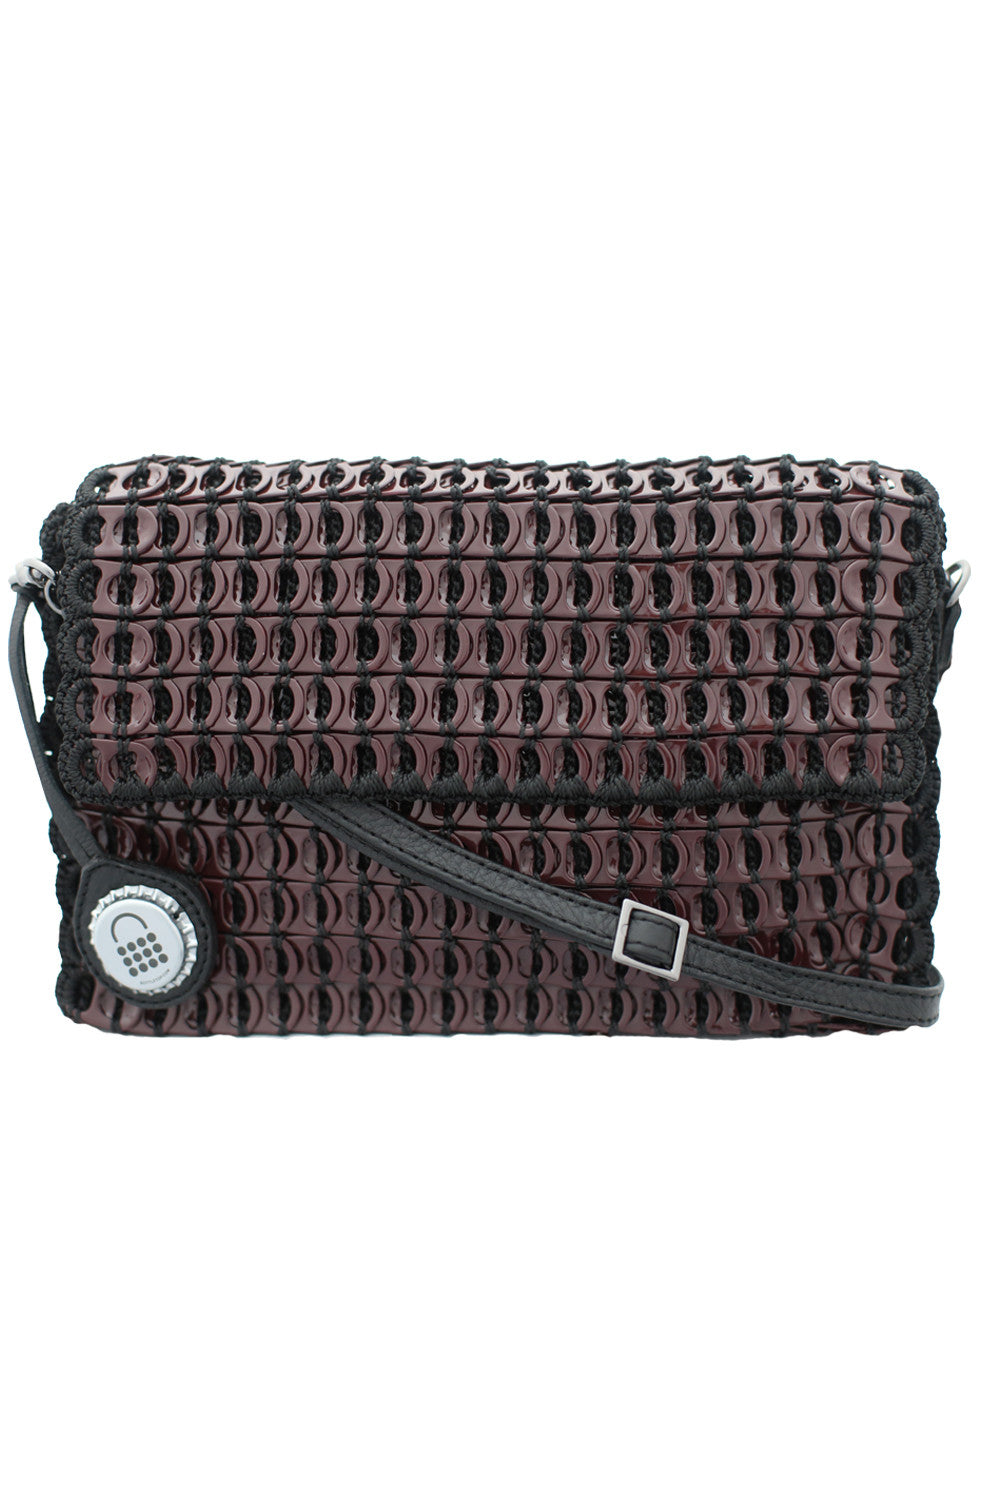 Amazona Mini Shoulder Bag in Bordeaux